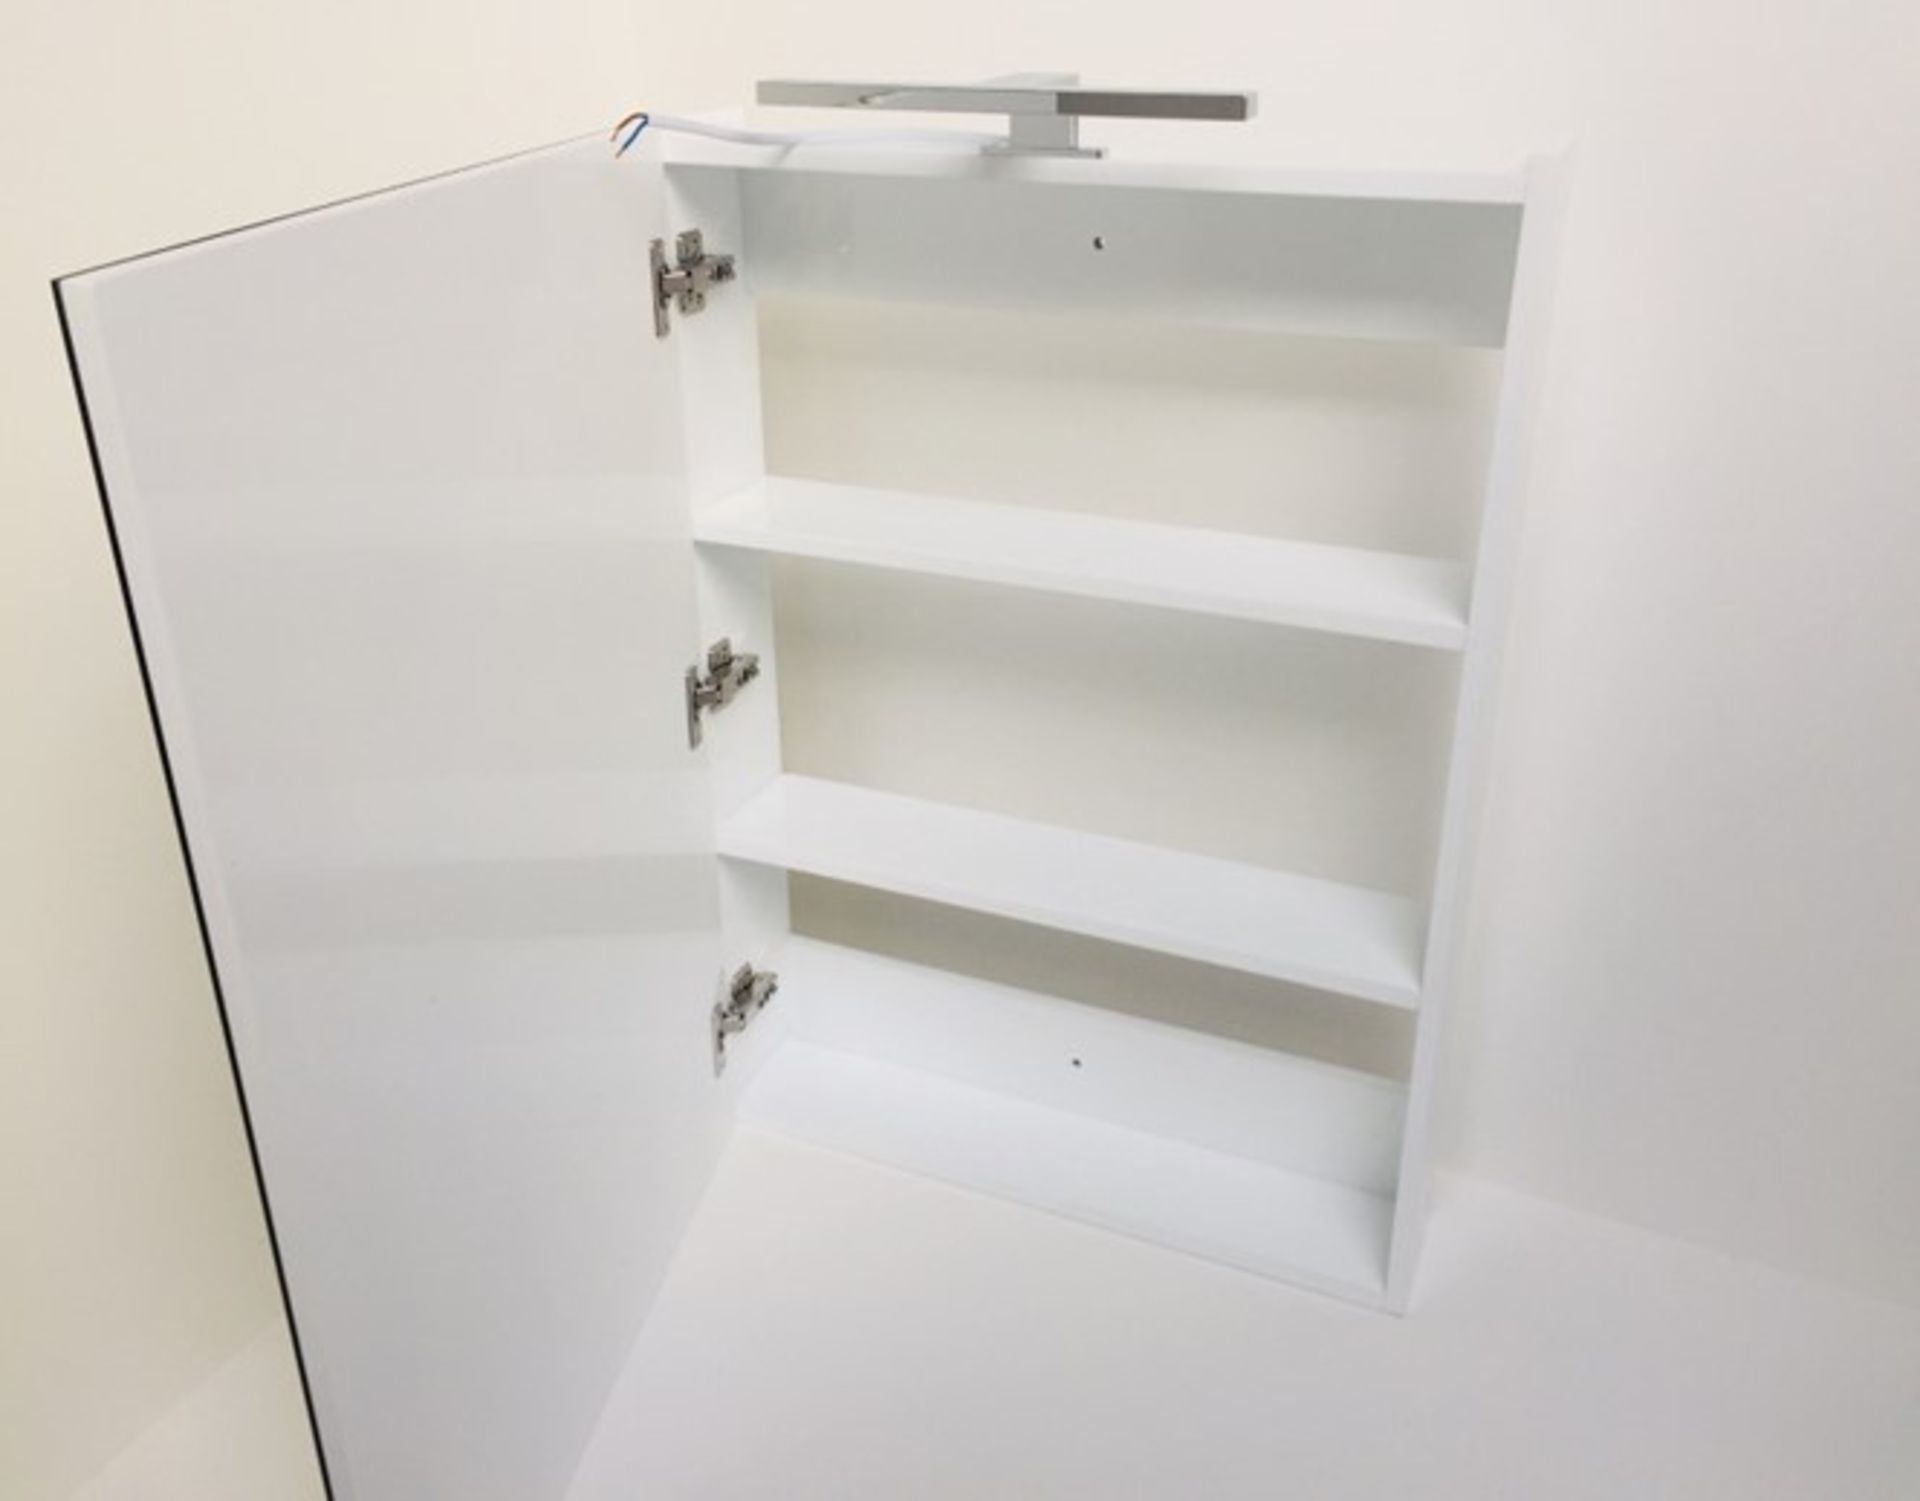 Lot 30 - x 5 Mirrored Cabinets In White With LED Light